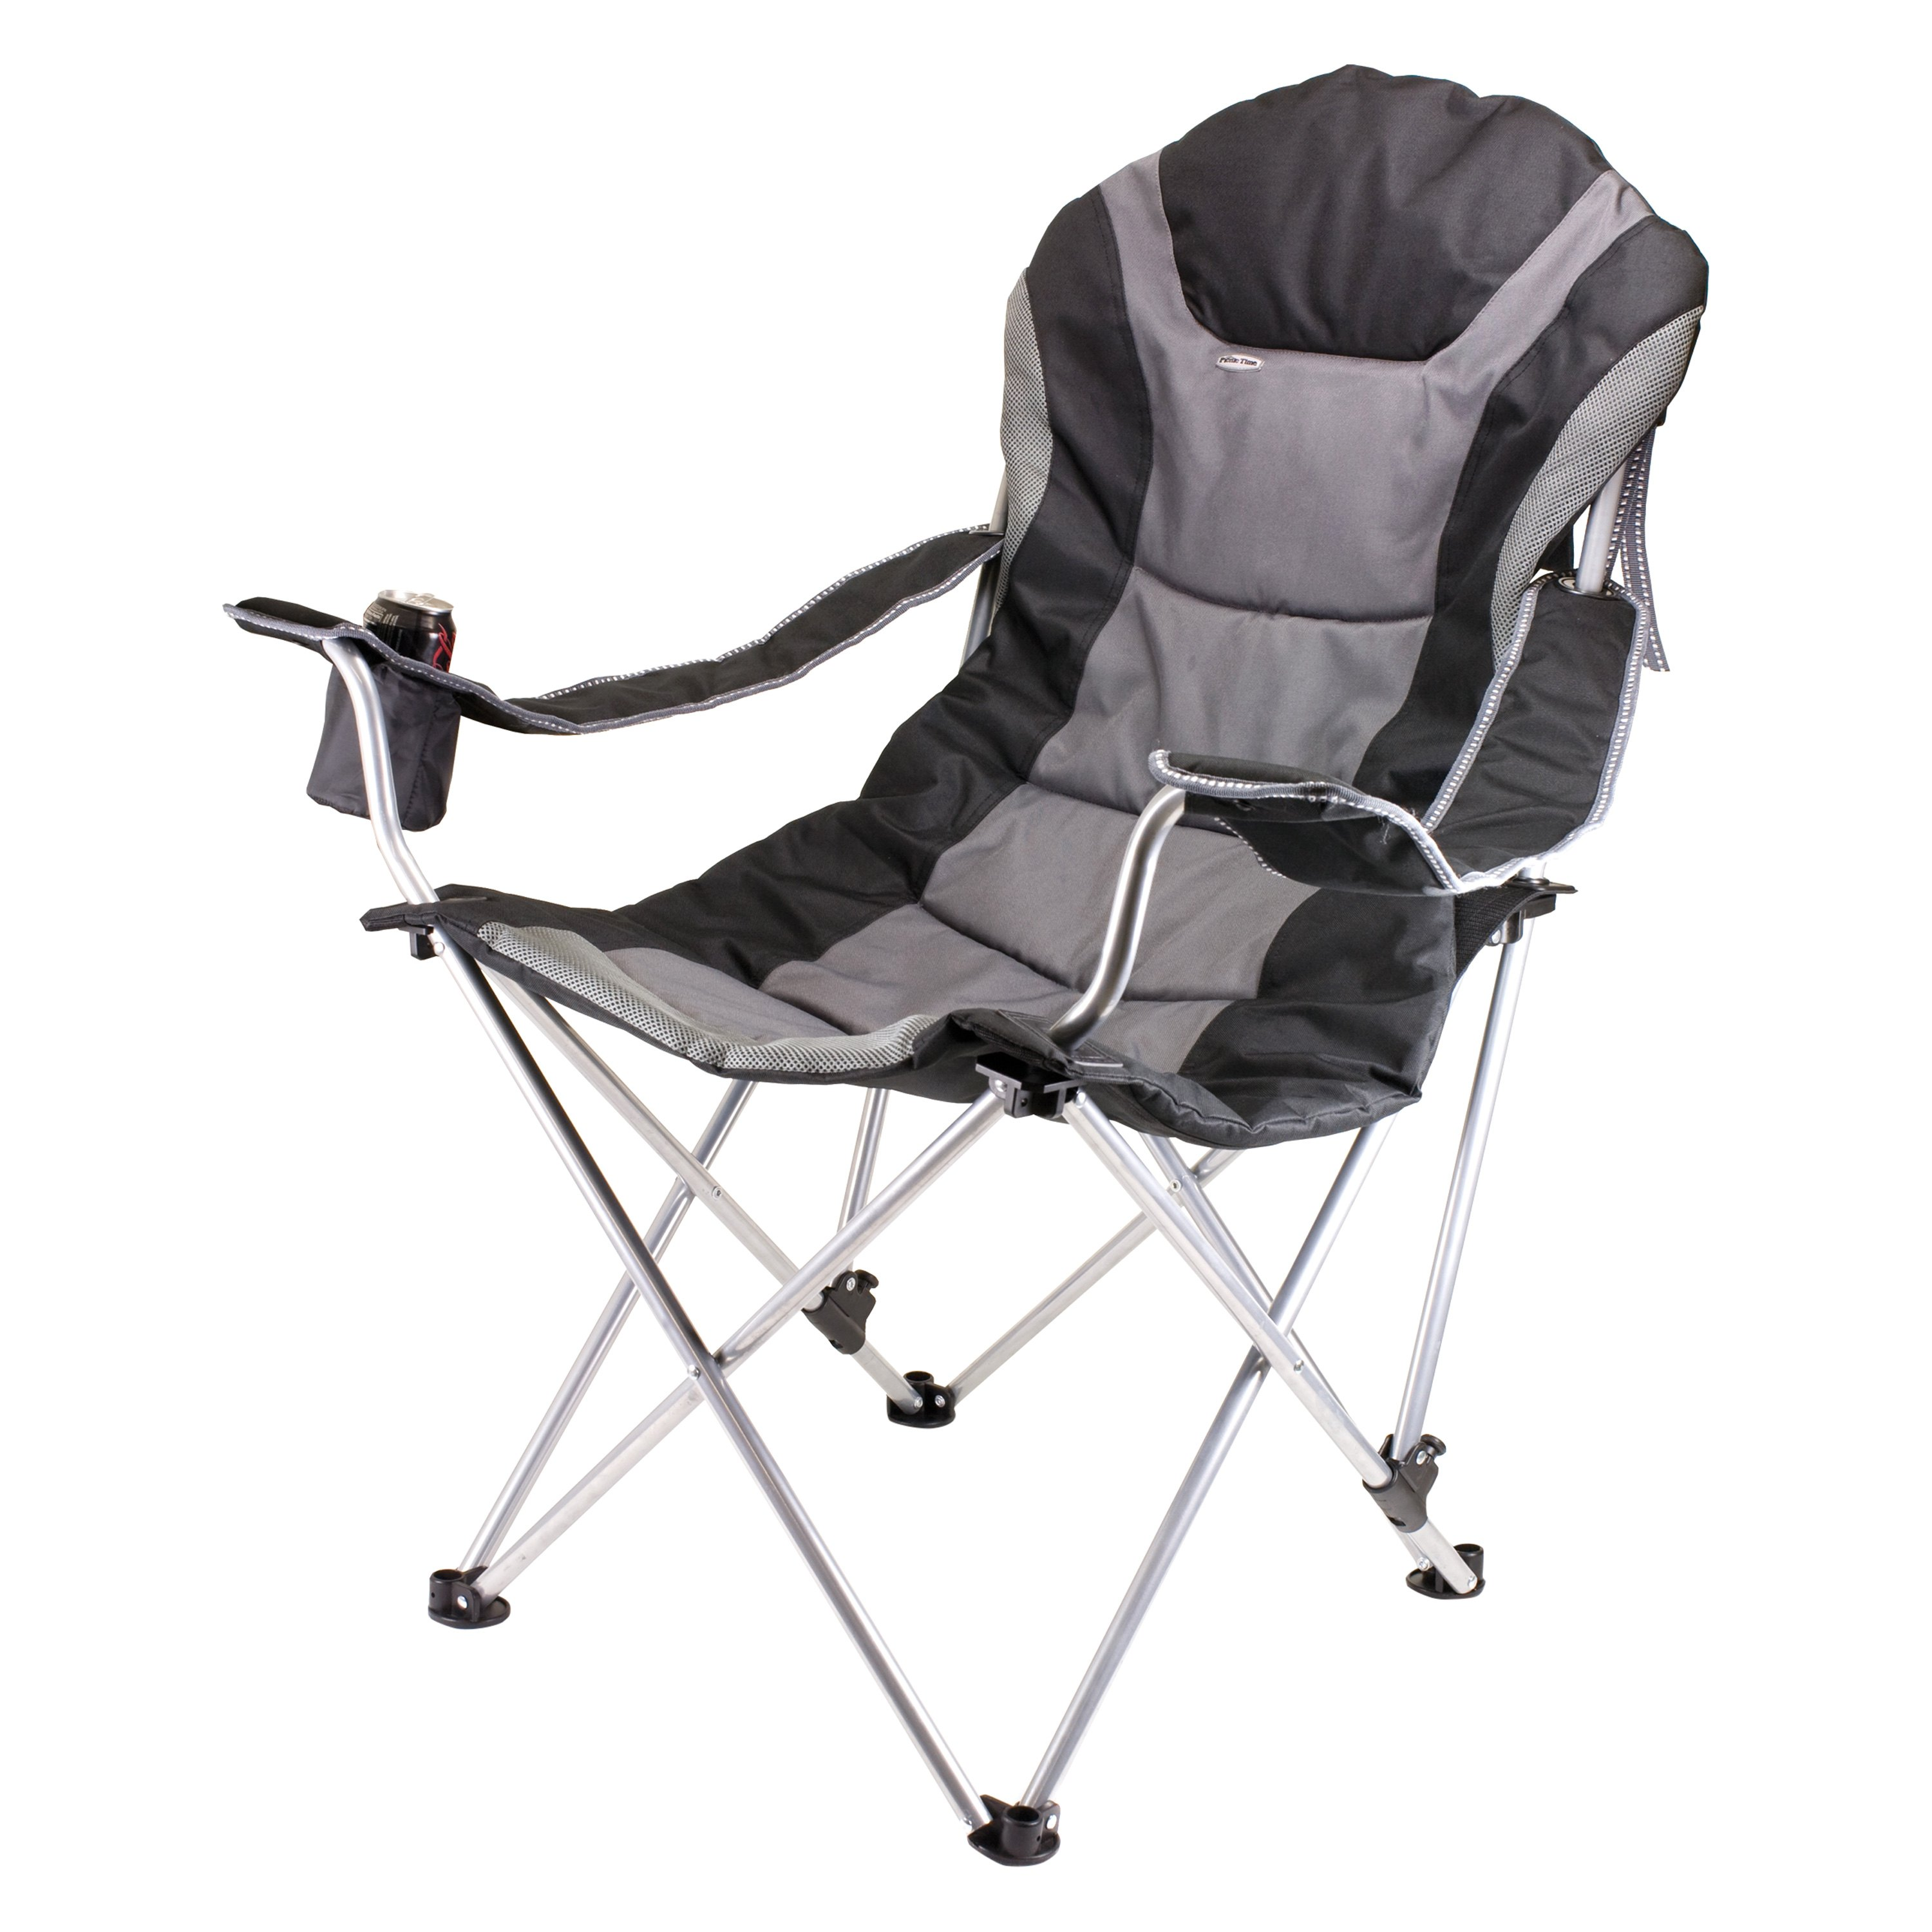 Picnic Time 174 803 00 175 000 0 Reclining Black Camp Chair